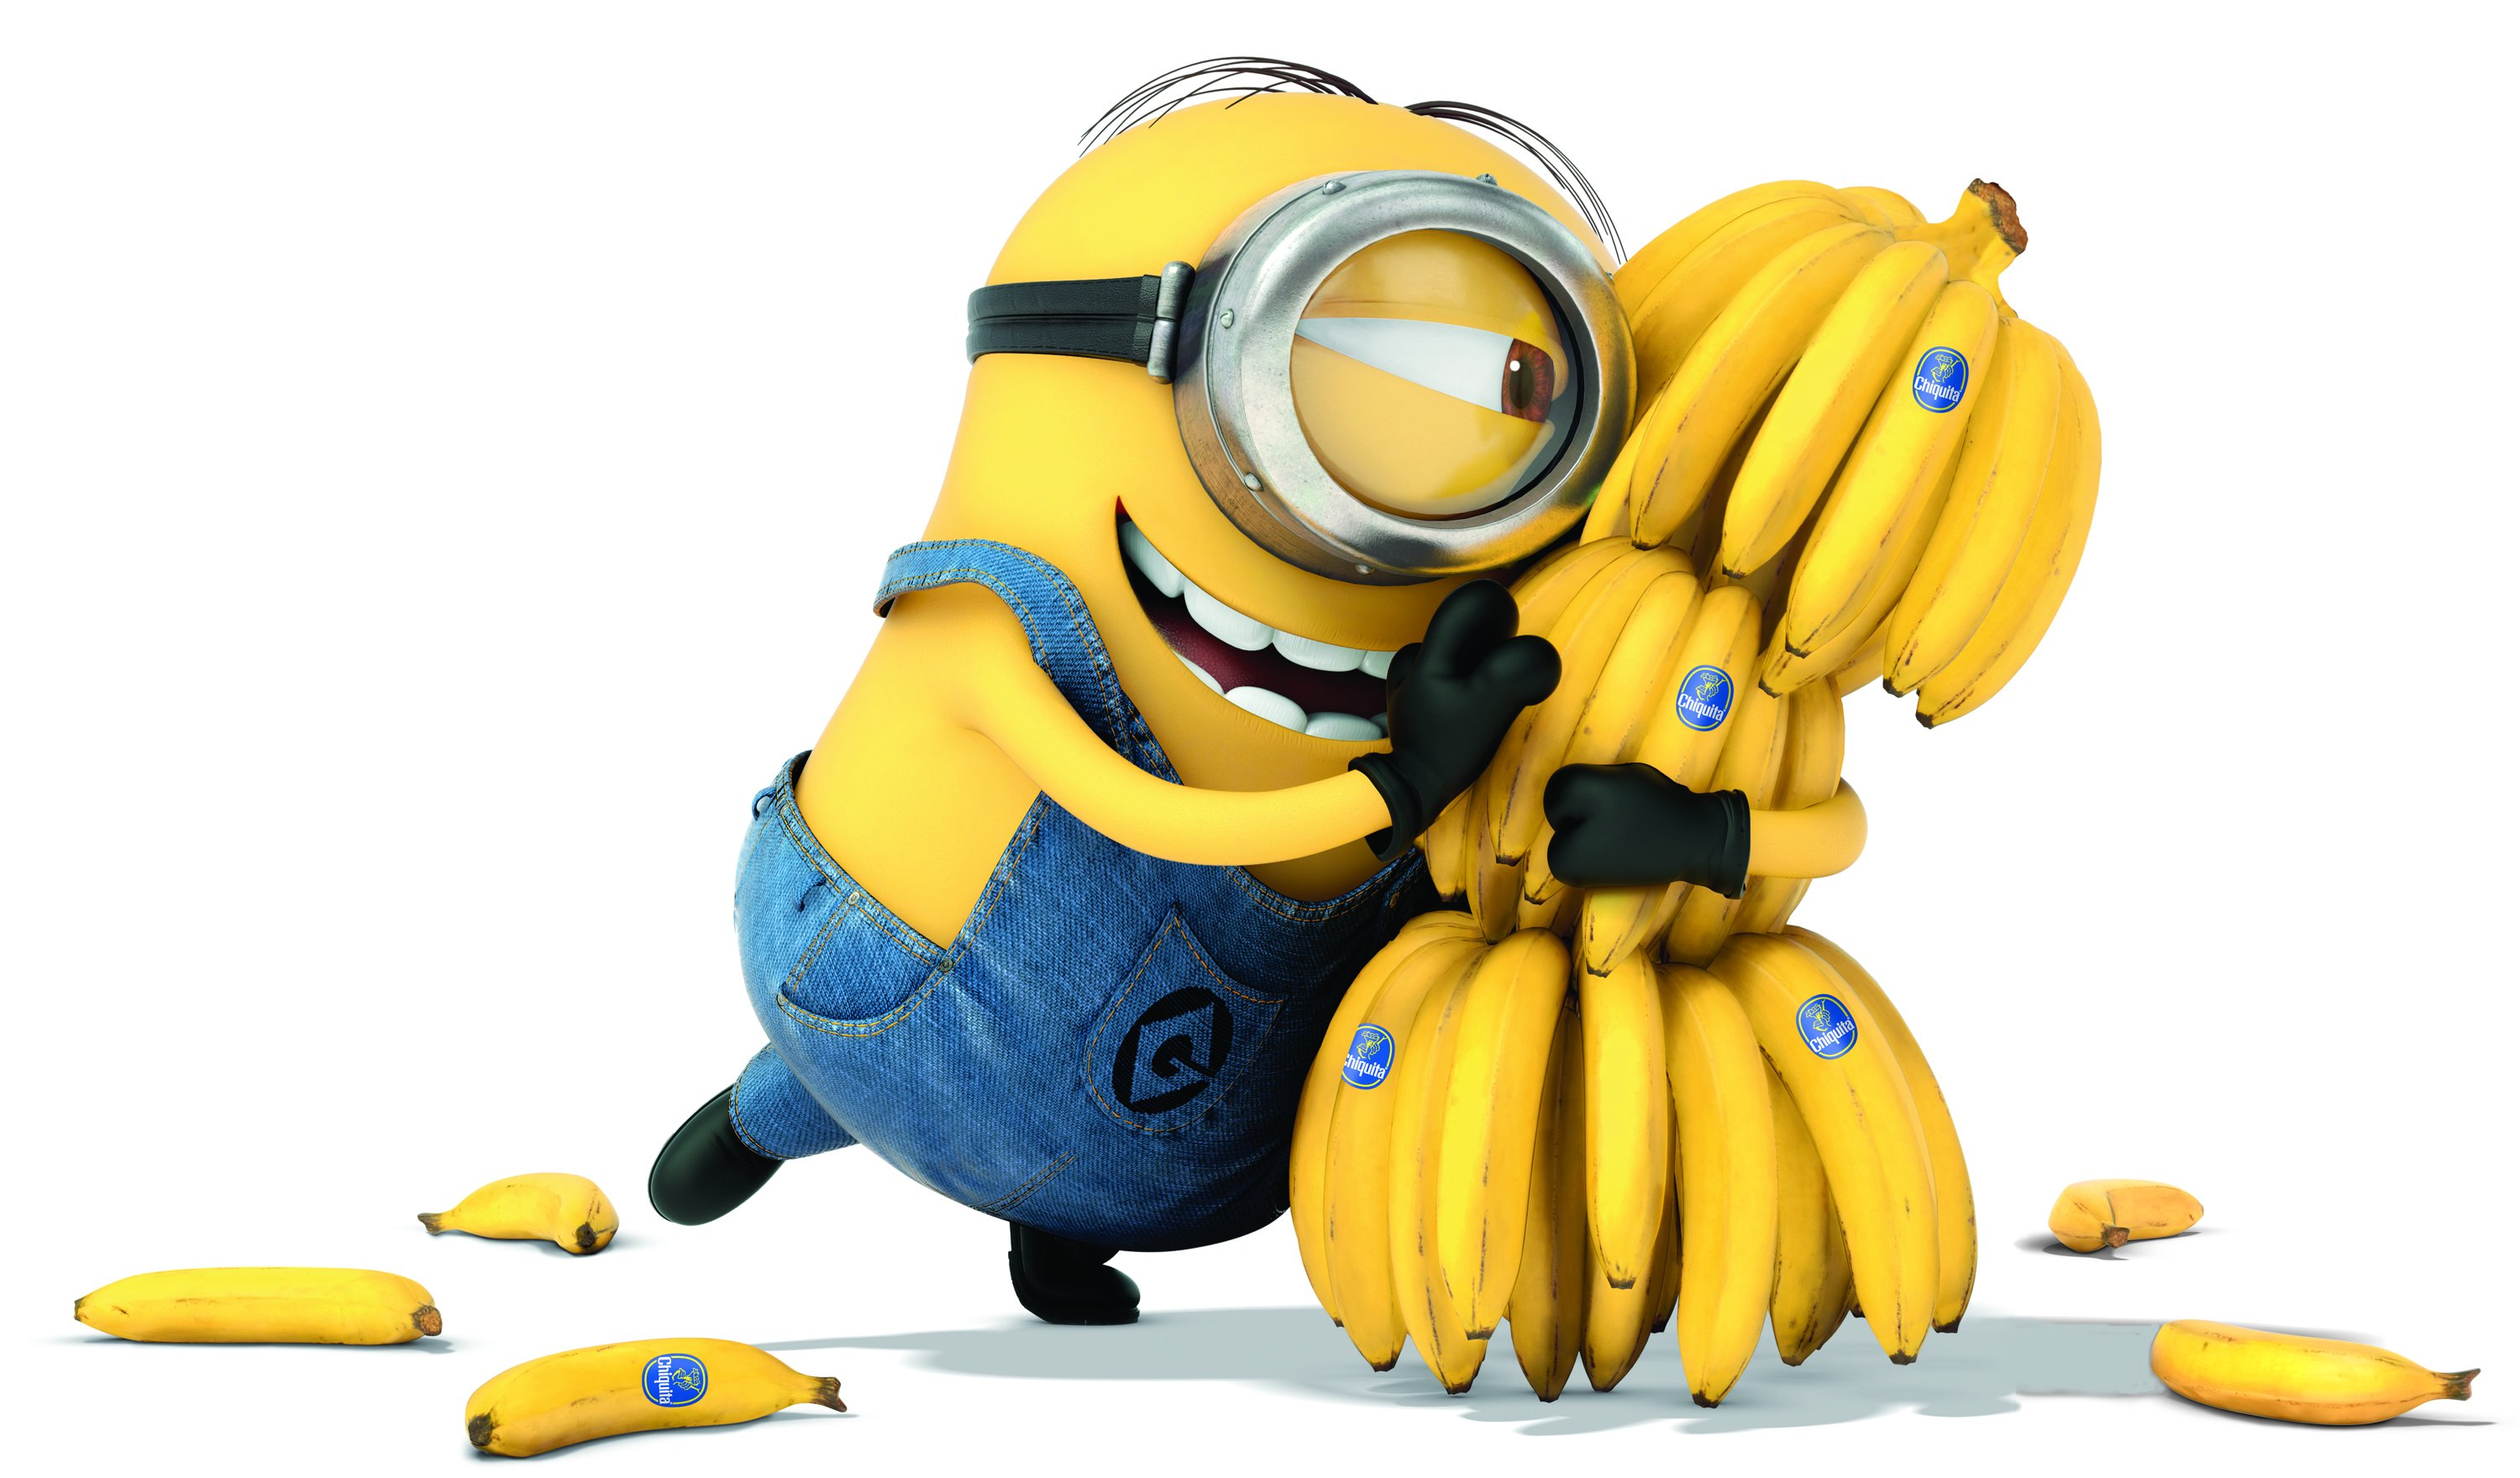 minions tons of banana hd wallpaper | 3000x1760 | gludy